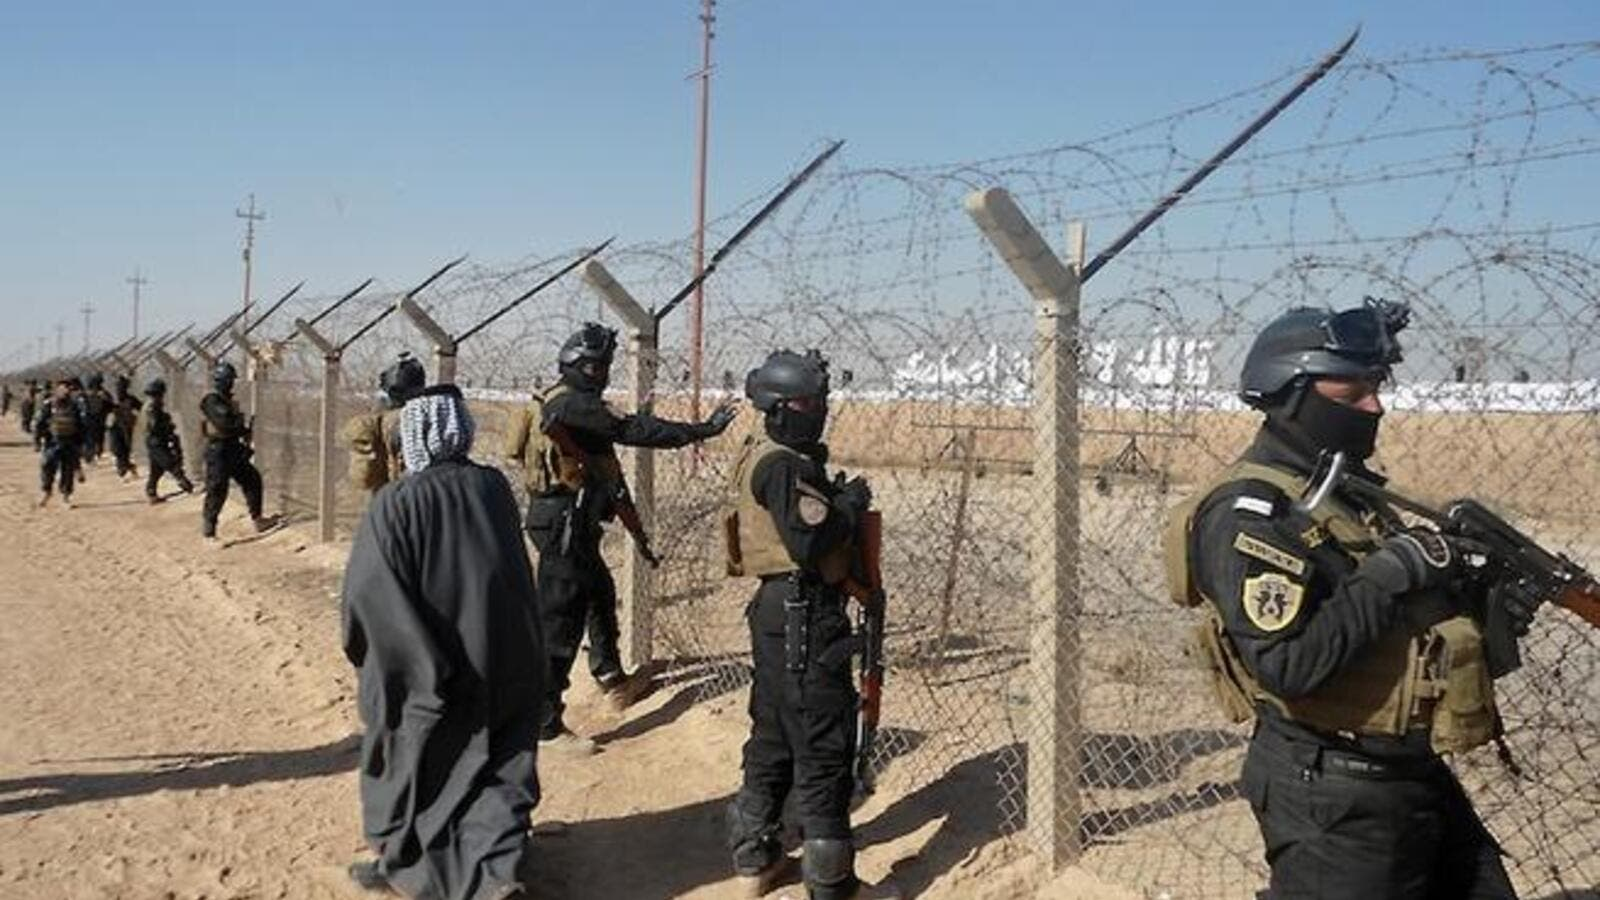 Iraqi SWAT forces stand guard outside Camp Ashraf, home to exiled Iranian opposition members. [AFP]